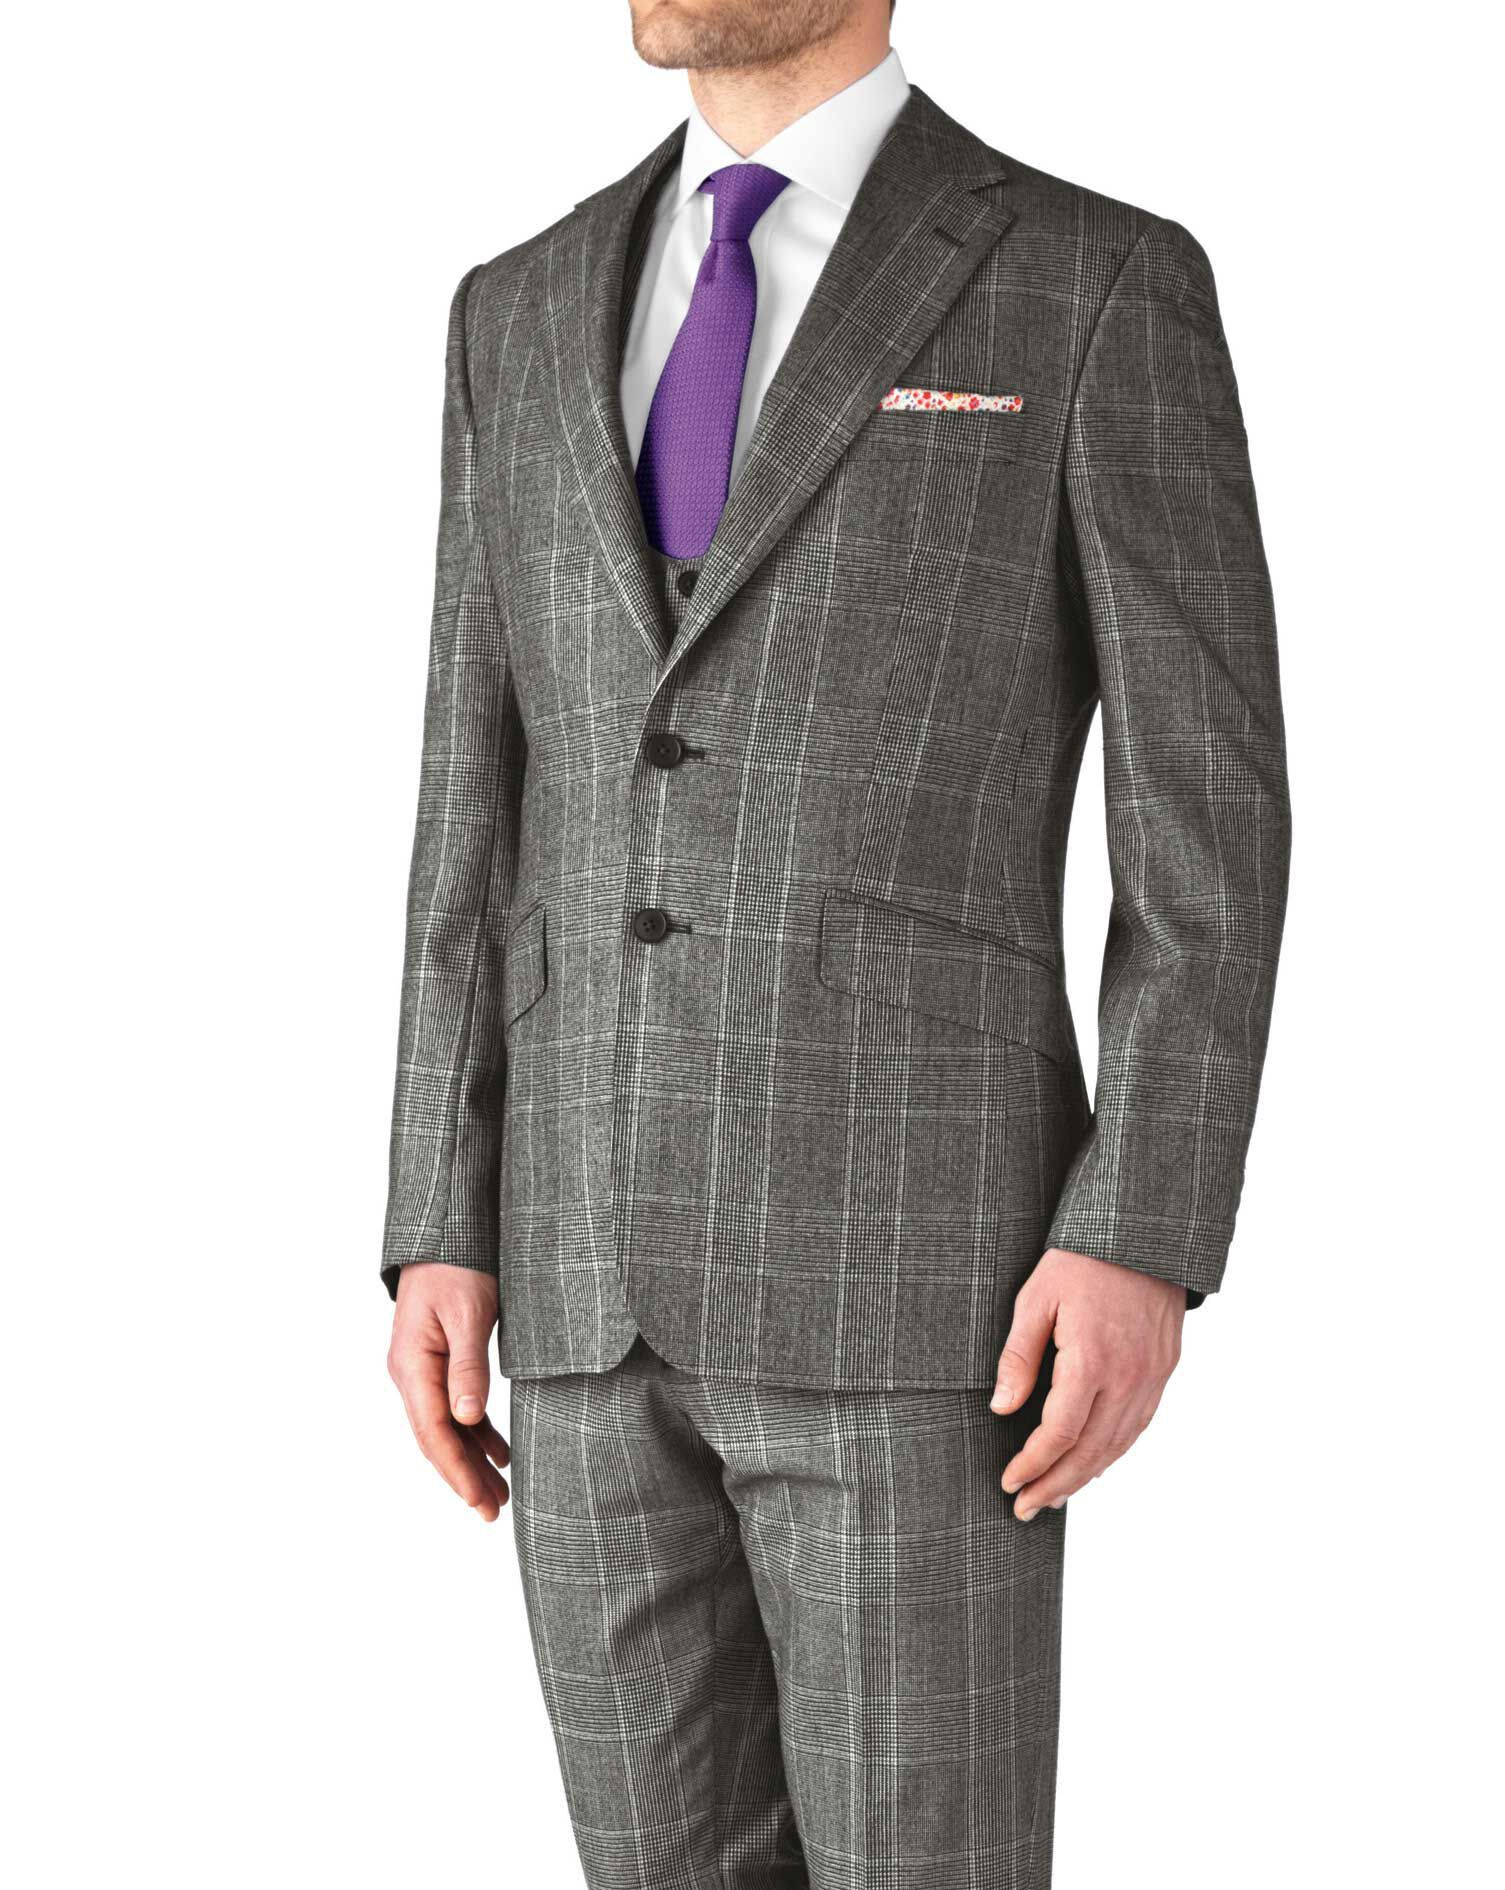 Grey Slim Fit Check Business Suit Wool Jacket Size 38 Regular by Charles Tyrwhitt